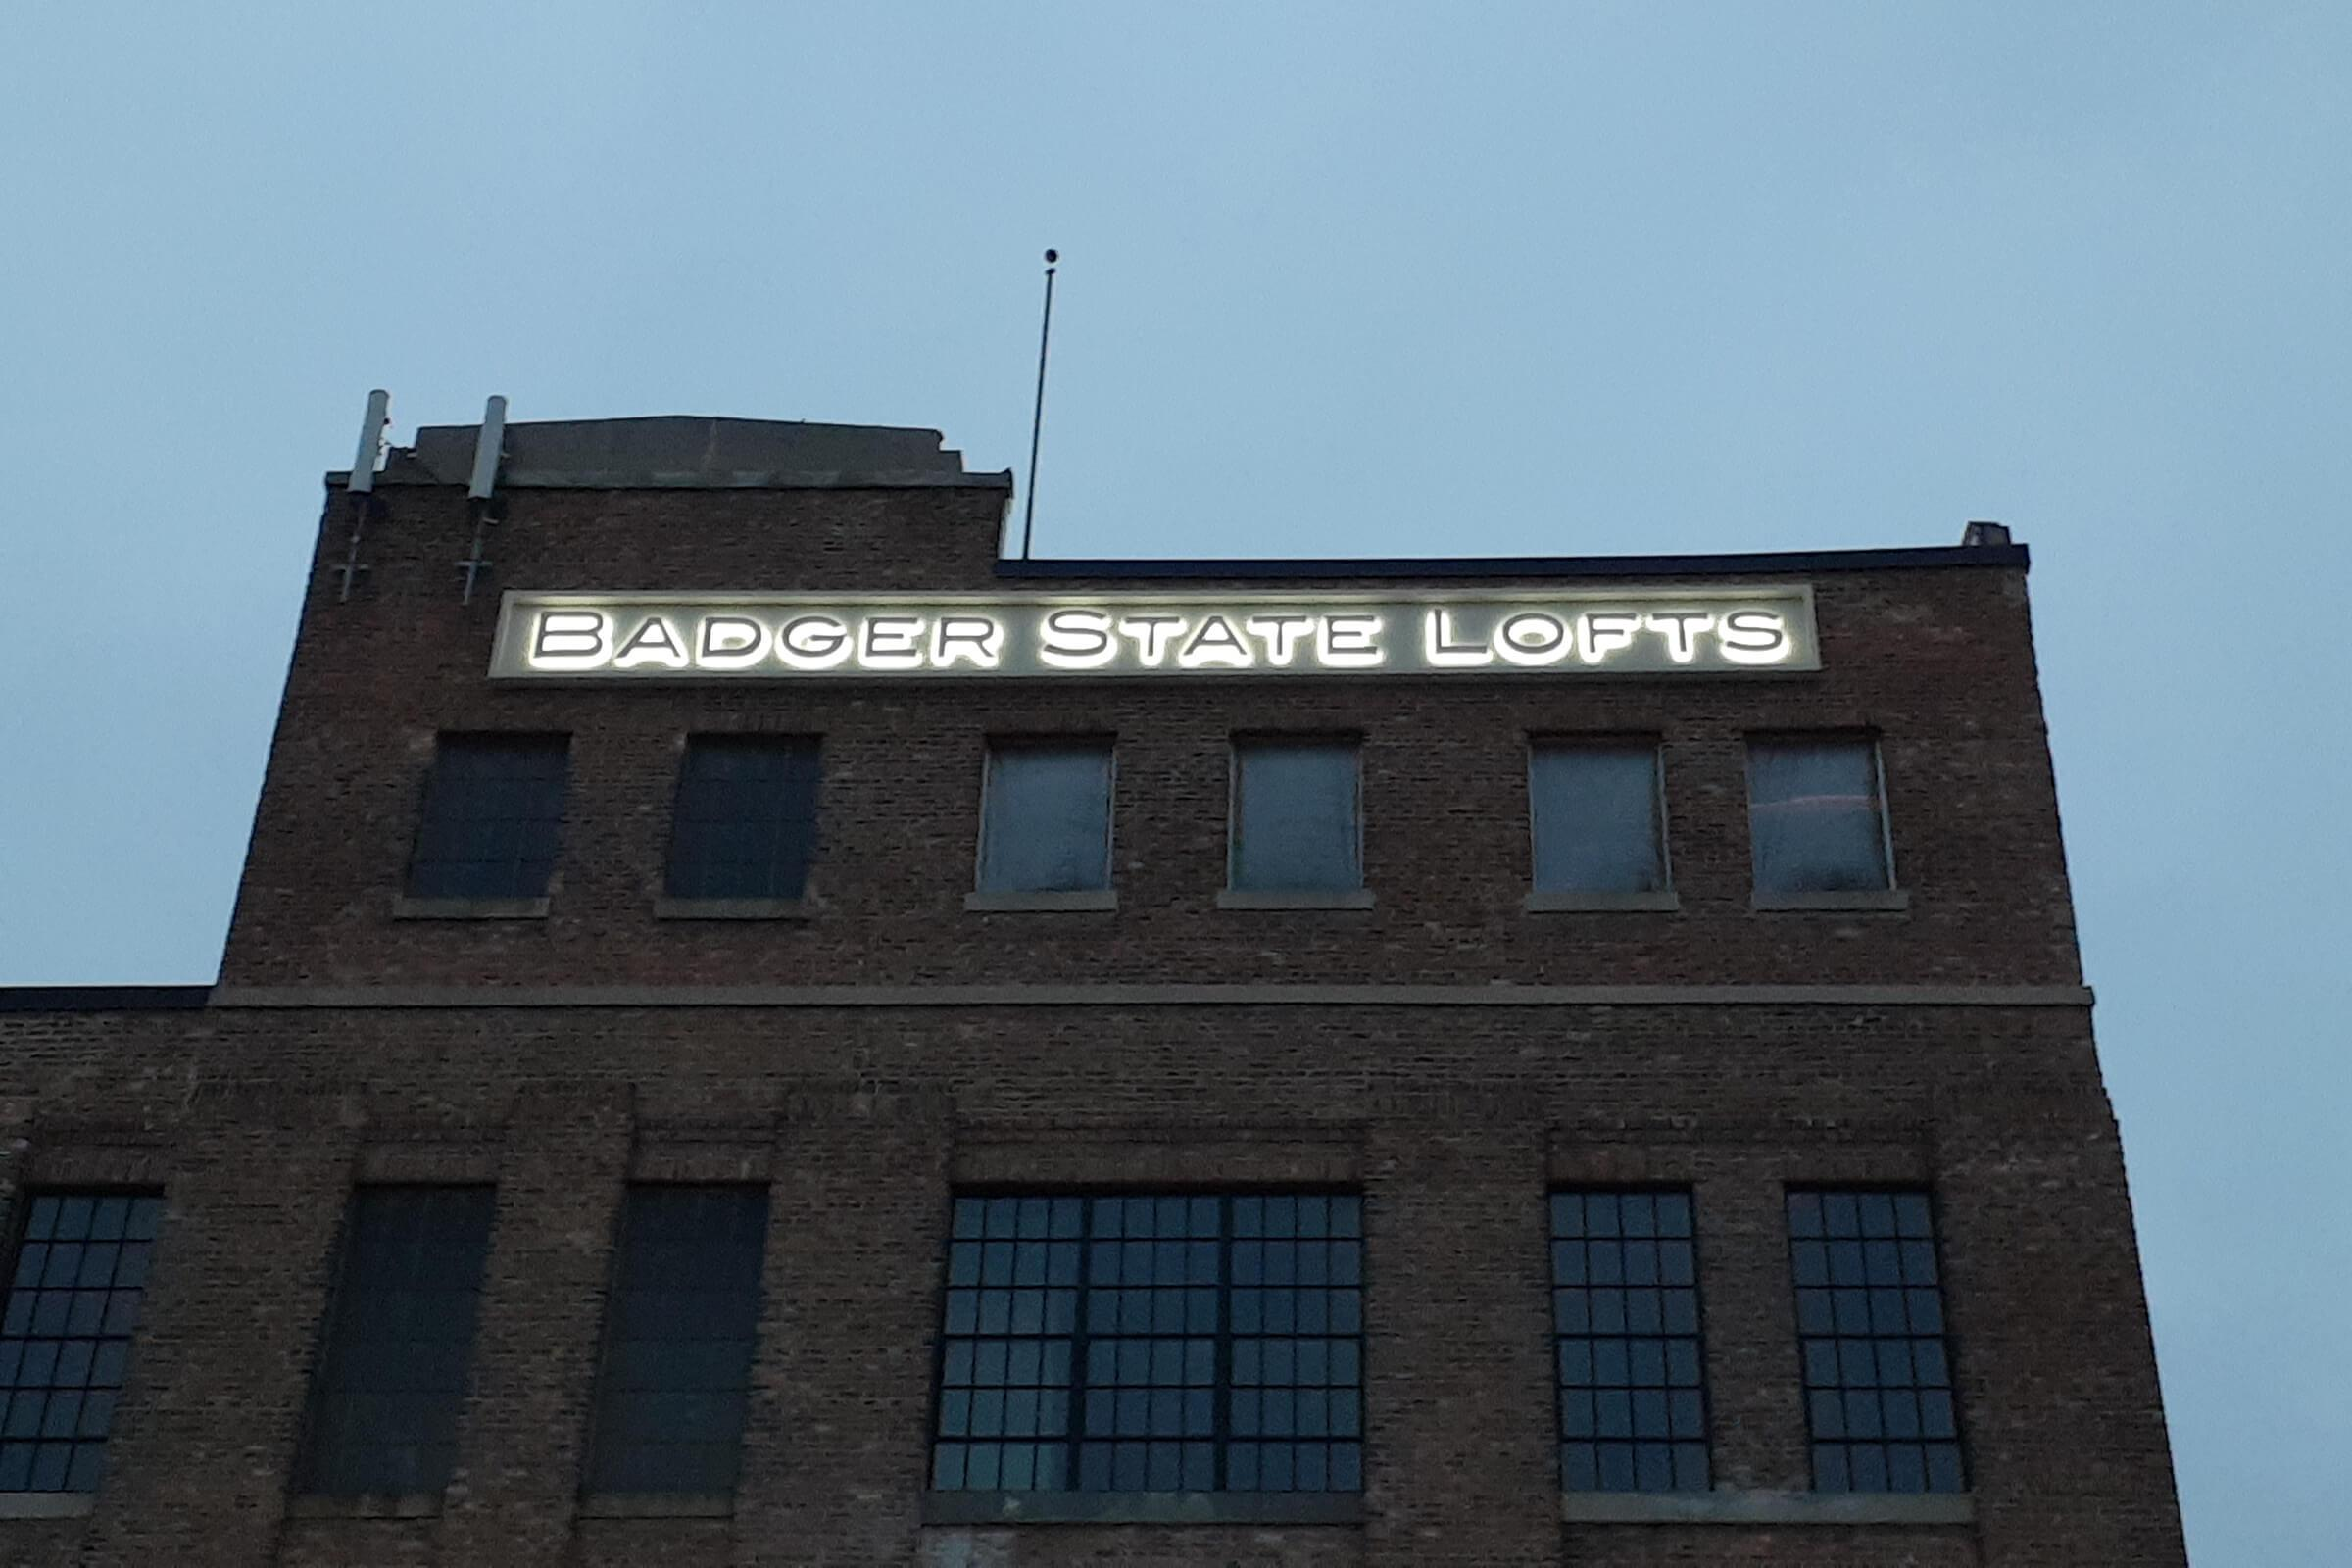 Picture of Badger State Lofts